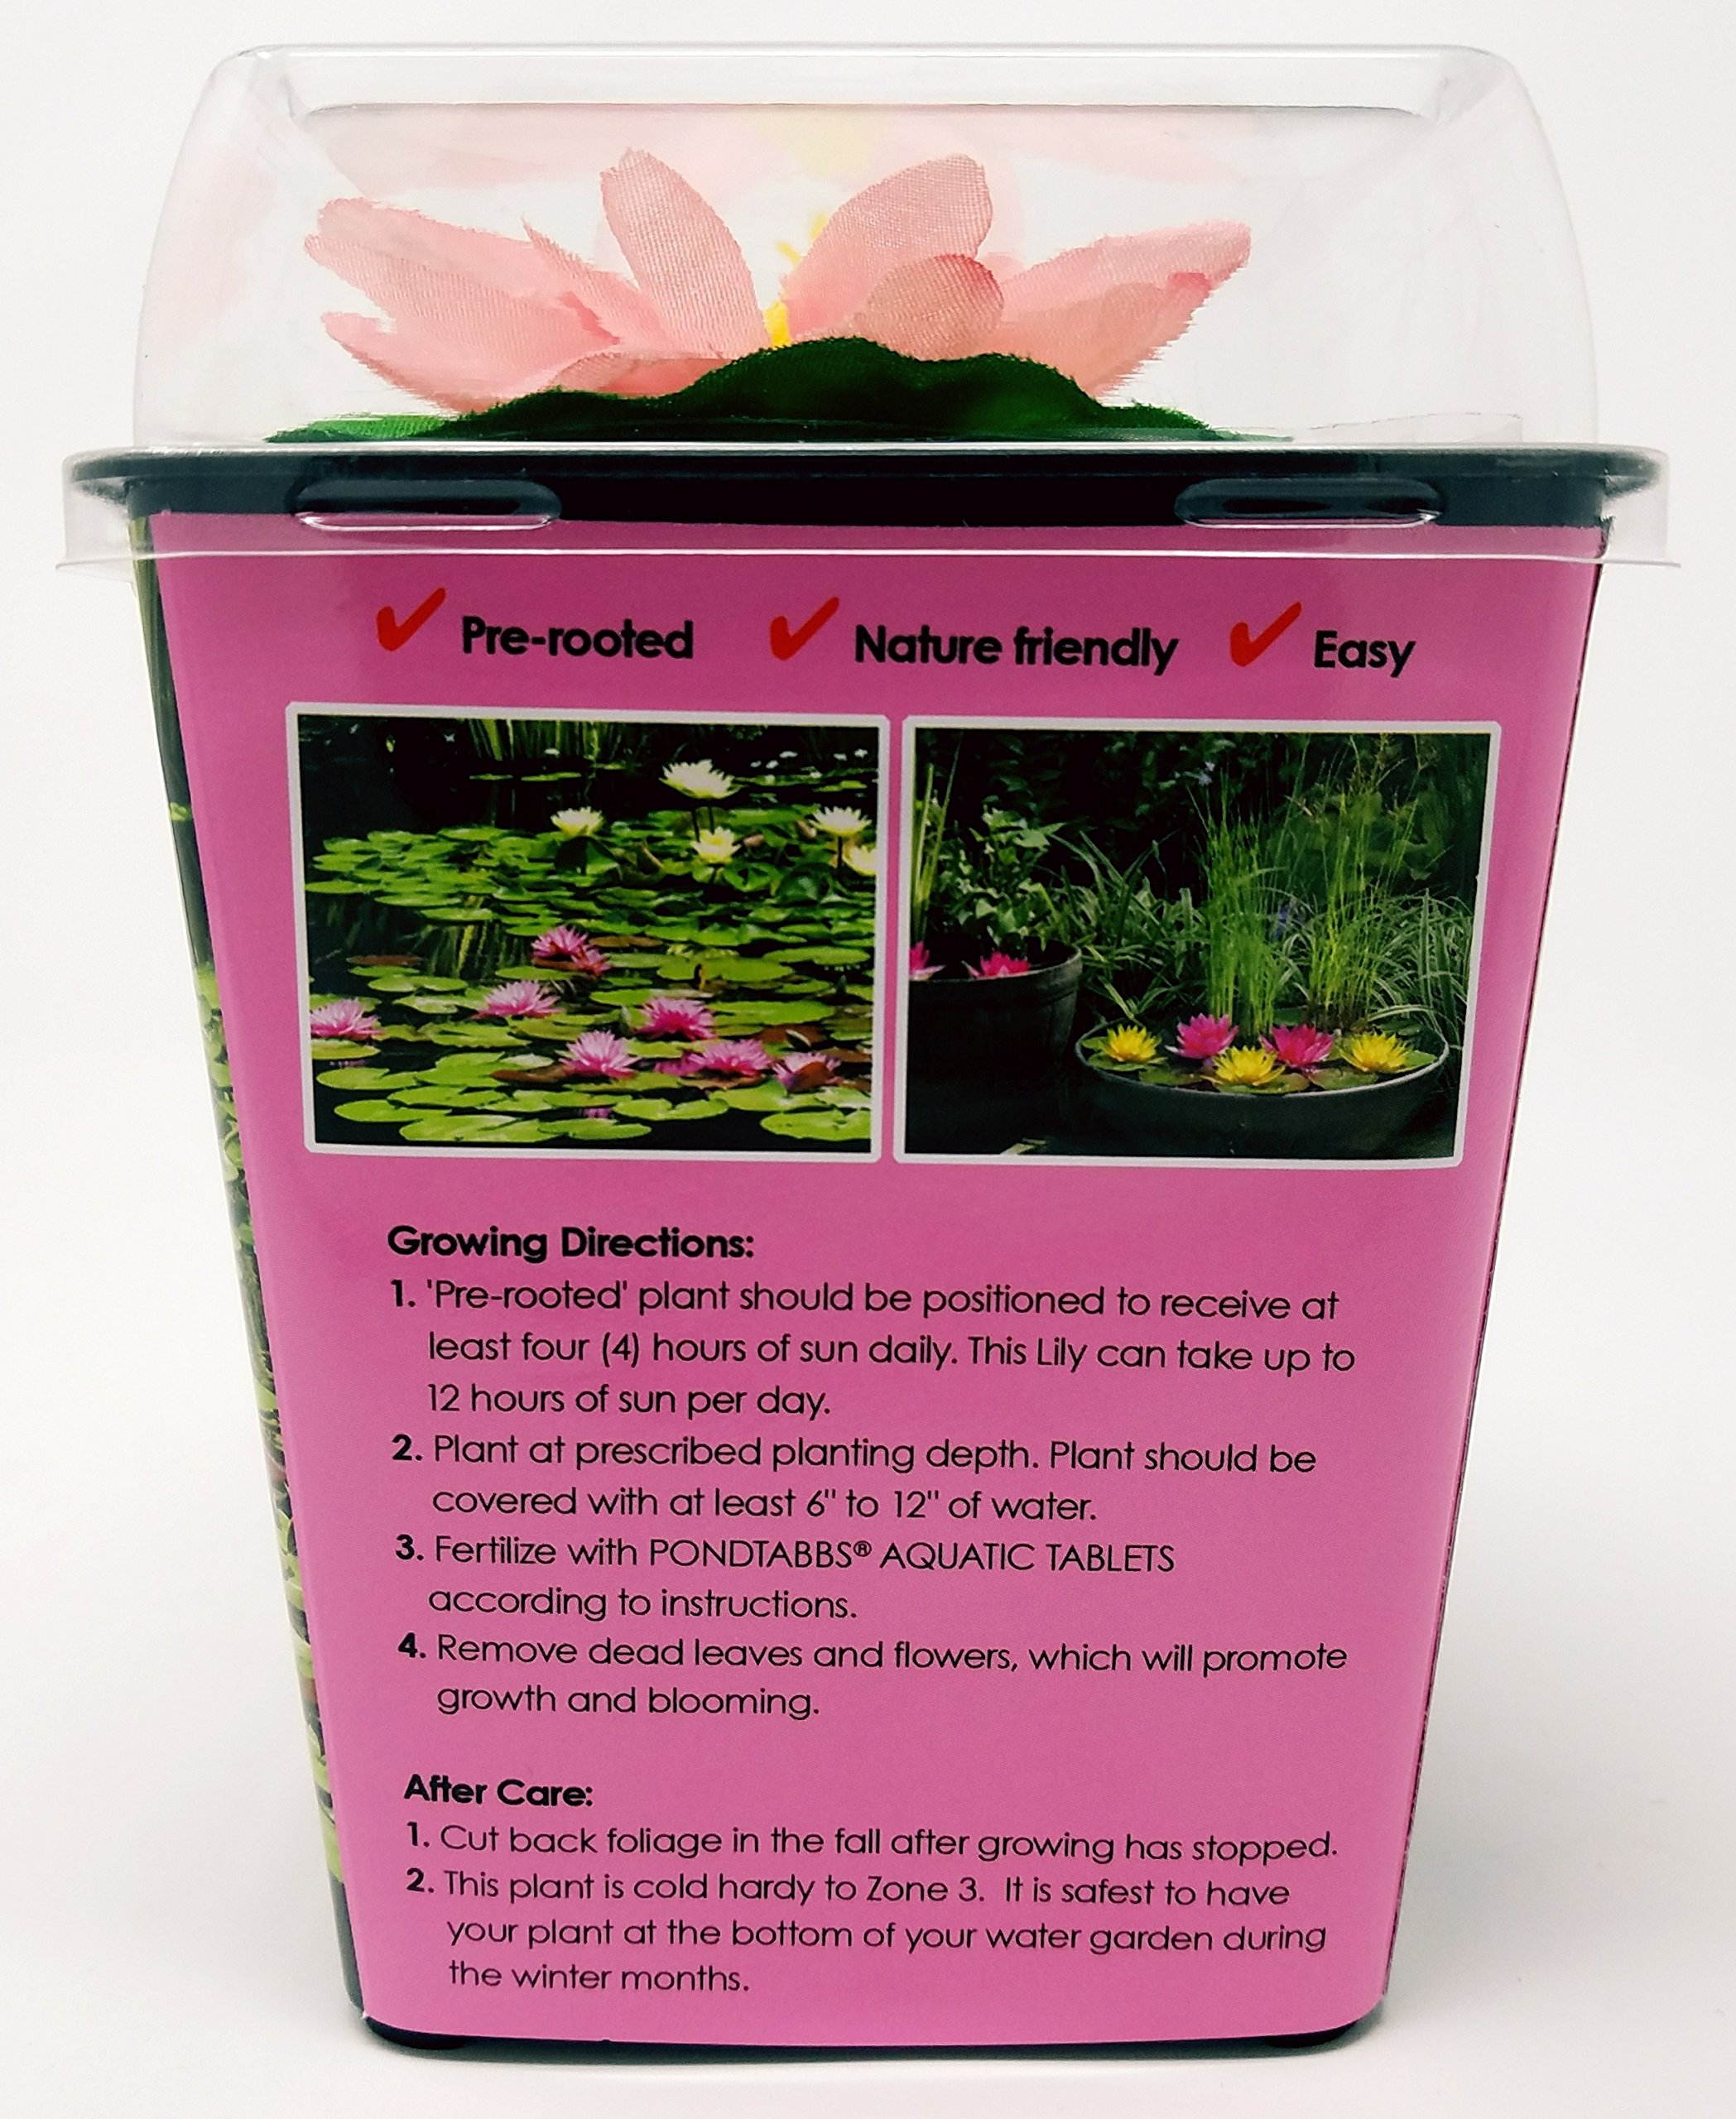 Live Aquatic Hardy Water Lily | Pre-Grown, Pre-Rooted, Hardy Water Lily for Your Pond or Patio Water Garden | Drop-N-Grow Convenience -Pink (Nymphaea 'Pink Venusta') by Chalily (Image #4)